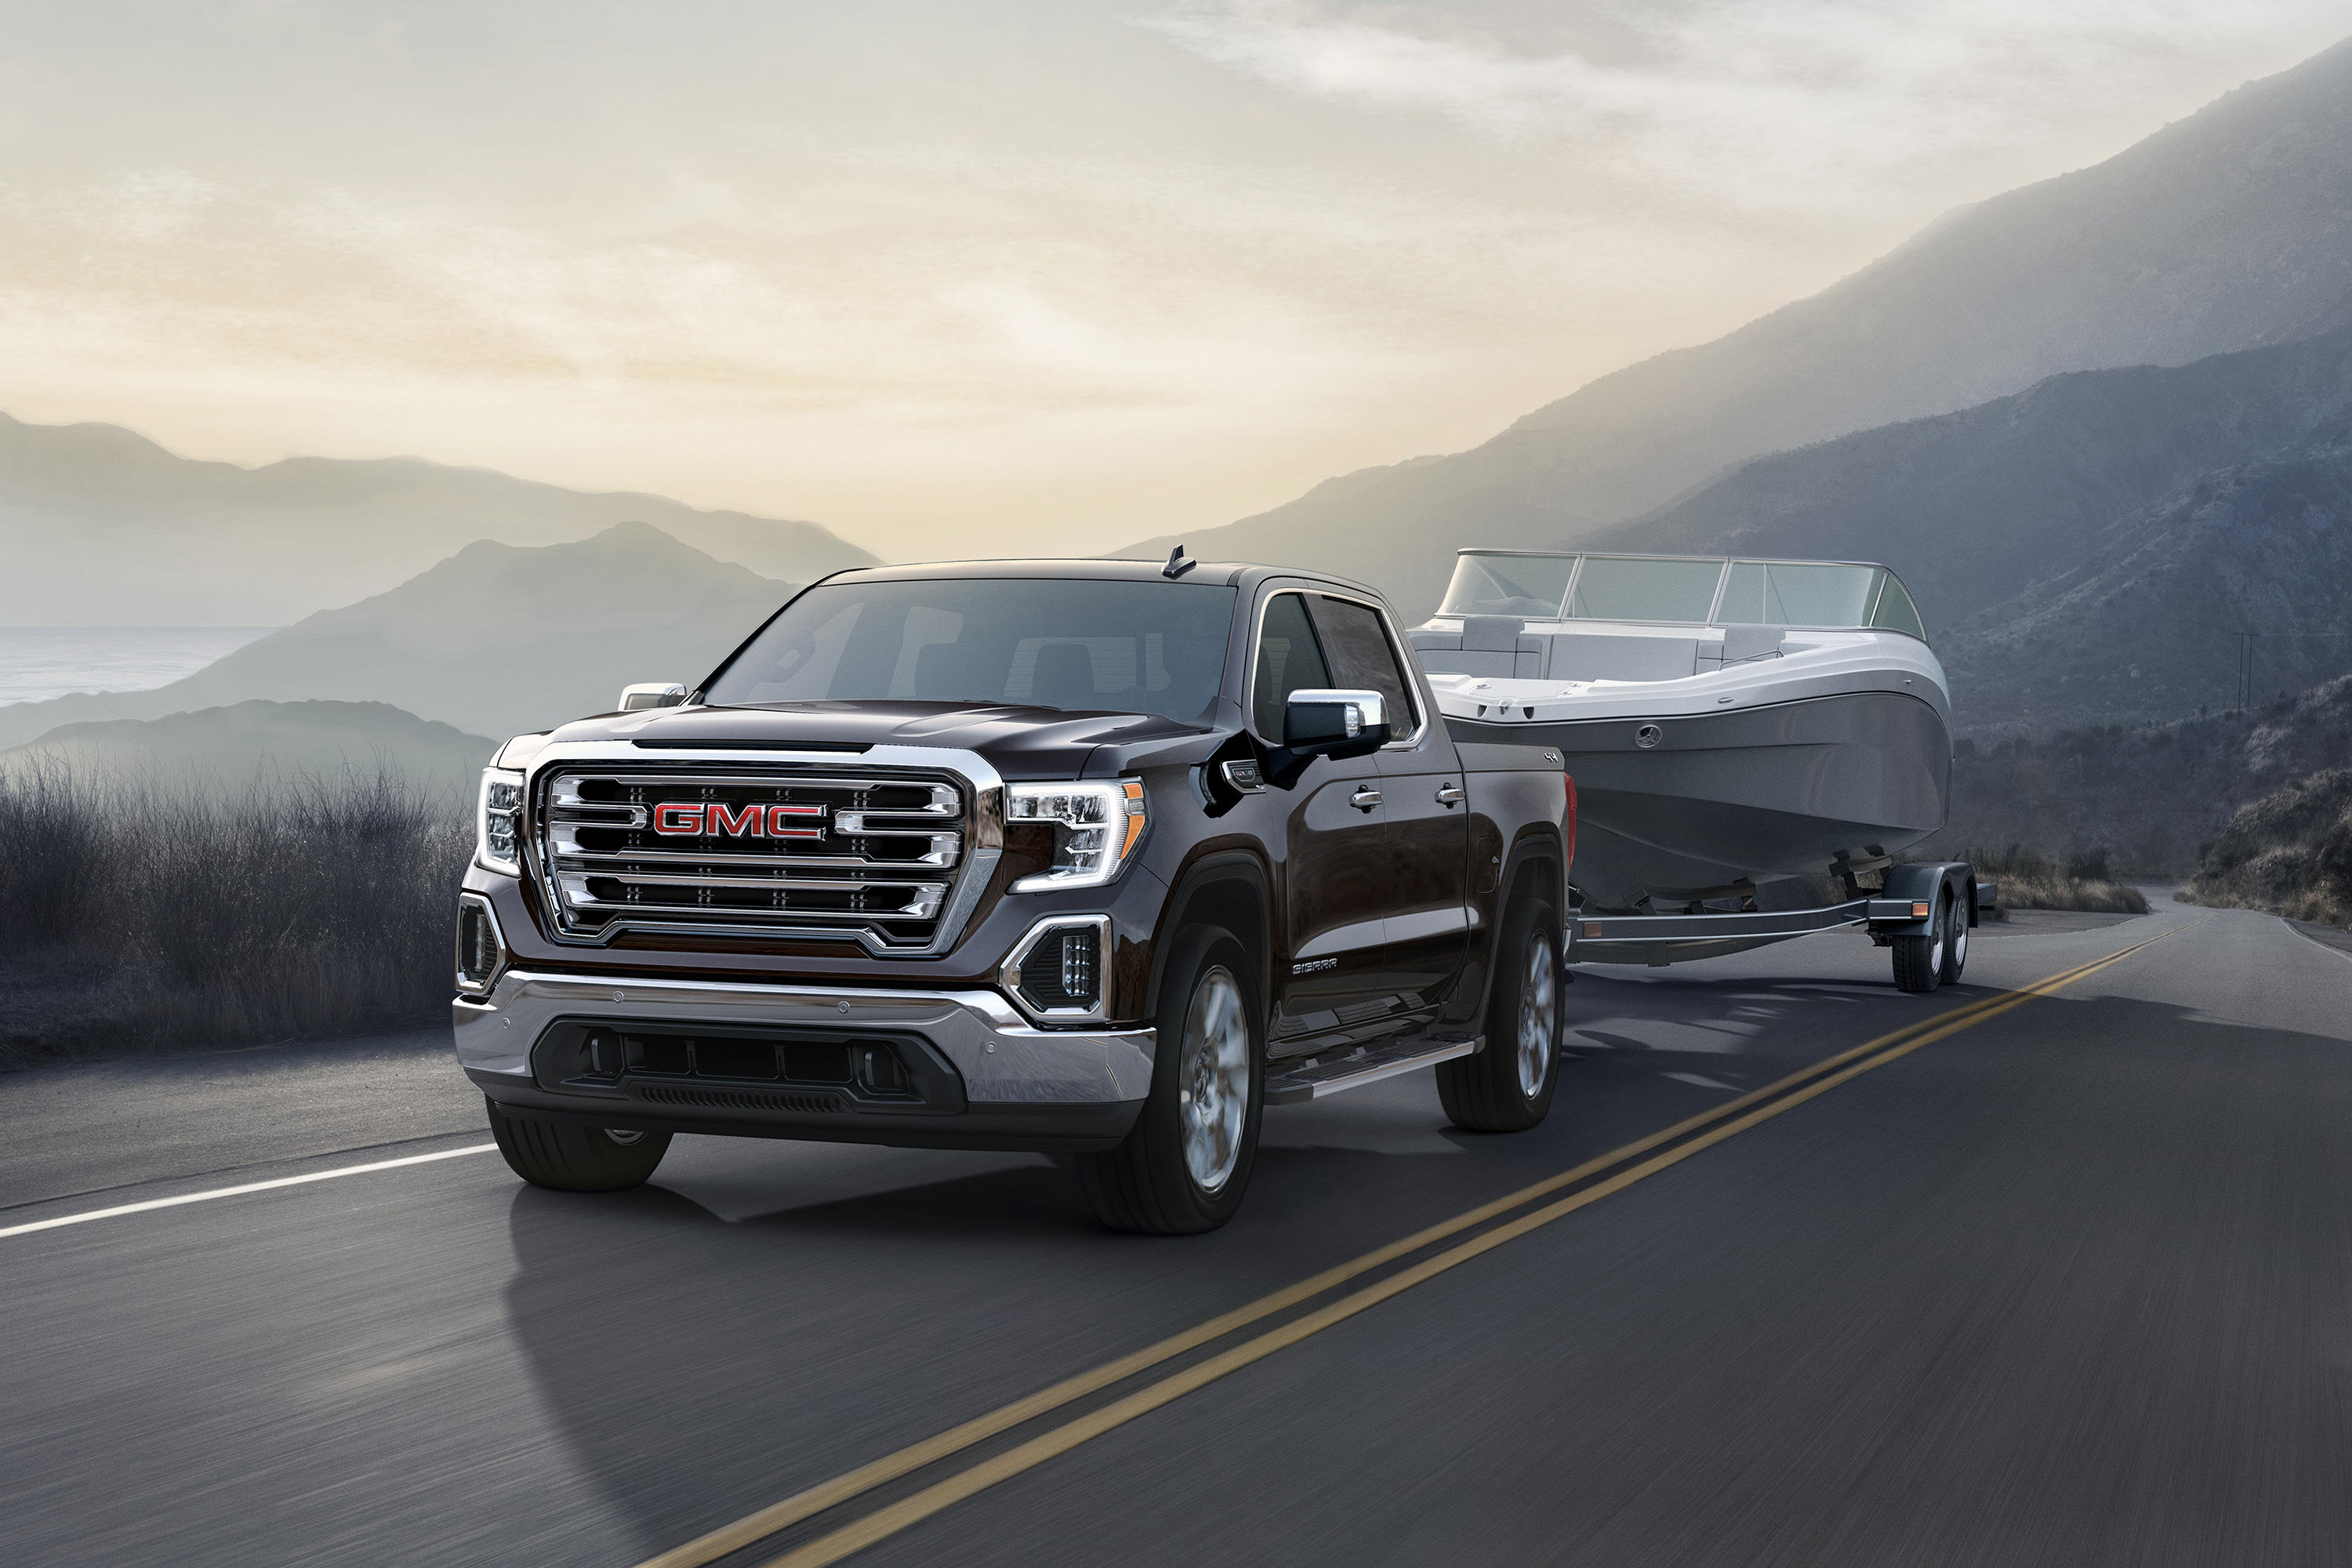 Towing a trailer: Everything you need to know - Roadshow